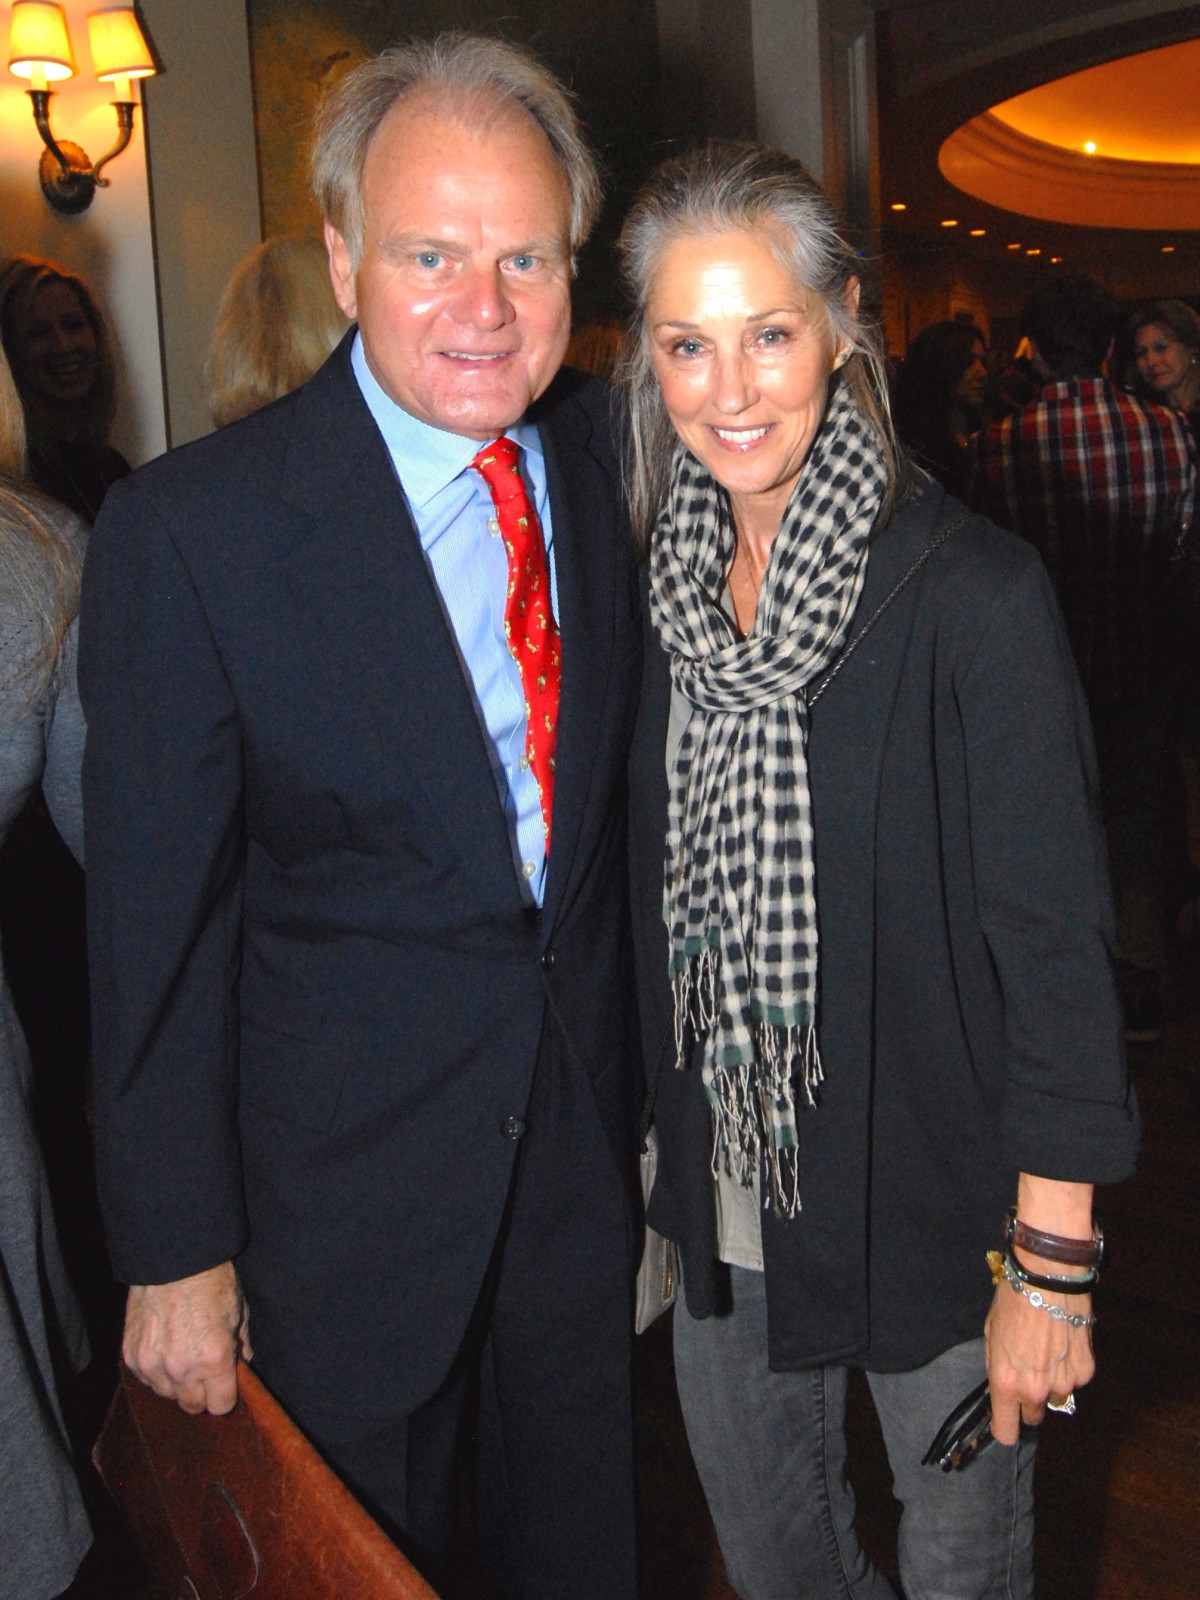 Dan Linscomb and Pam Kuhl-Linscomb at Salute to Retail luncheon